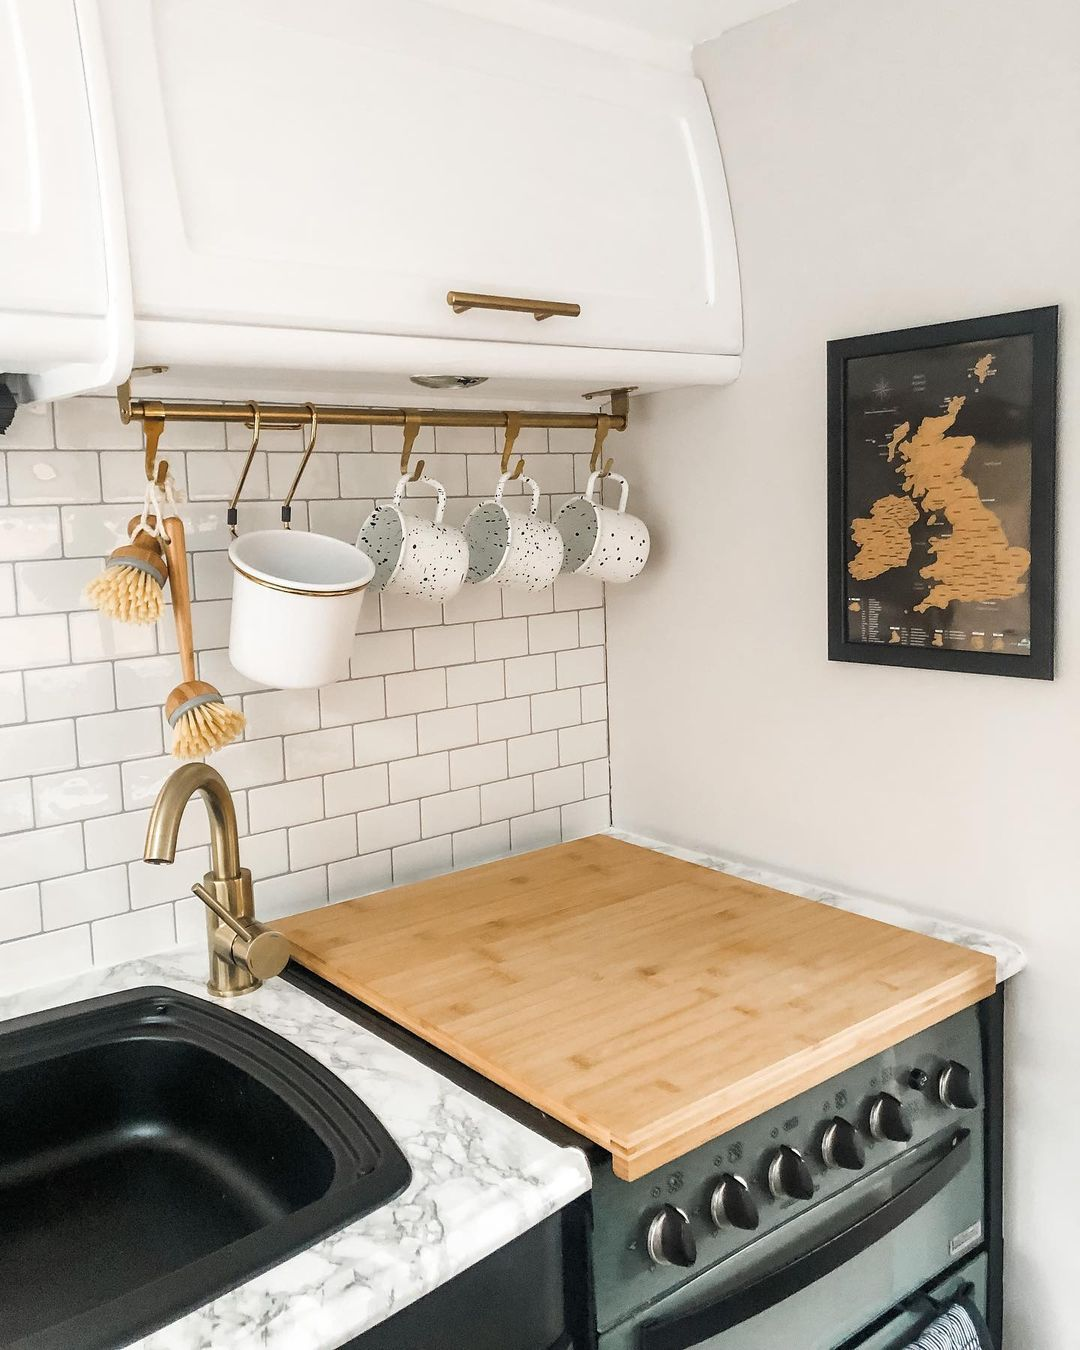 Caravan kitchen with a butchers block cover on the stove top.